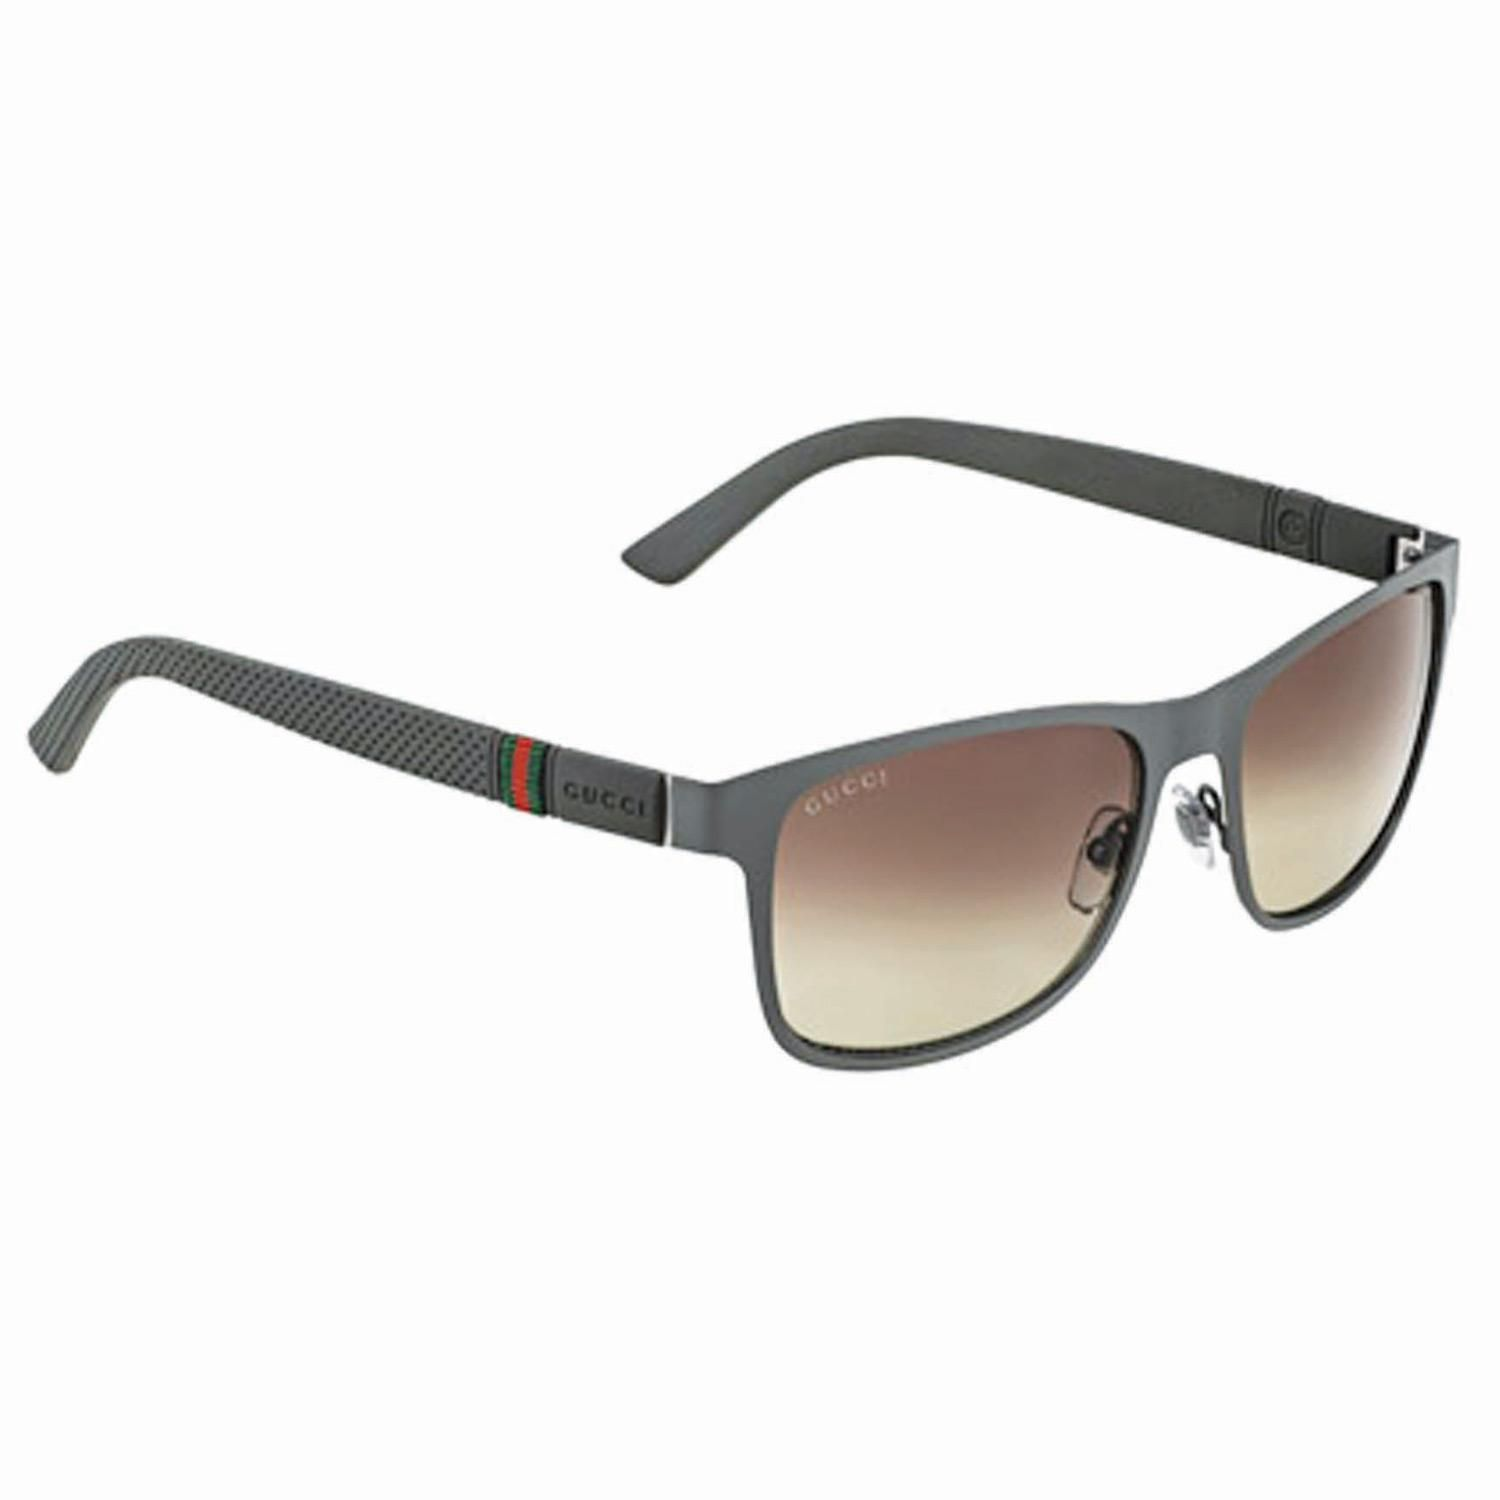 b74fcfa8616 Gucci Sunglasses-GG 2247 S-4VF LA-56 Gucci Sunglasses-Metal Frame-Matte  Grey Brown Frame Color-Grey Shaded Lens Color Gents